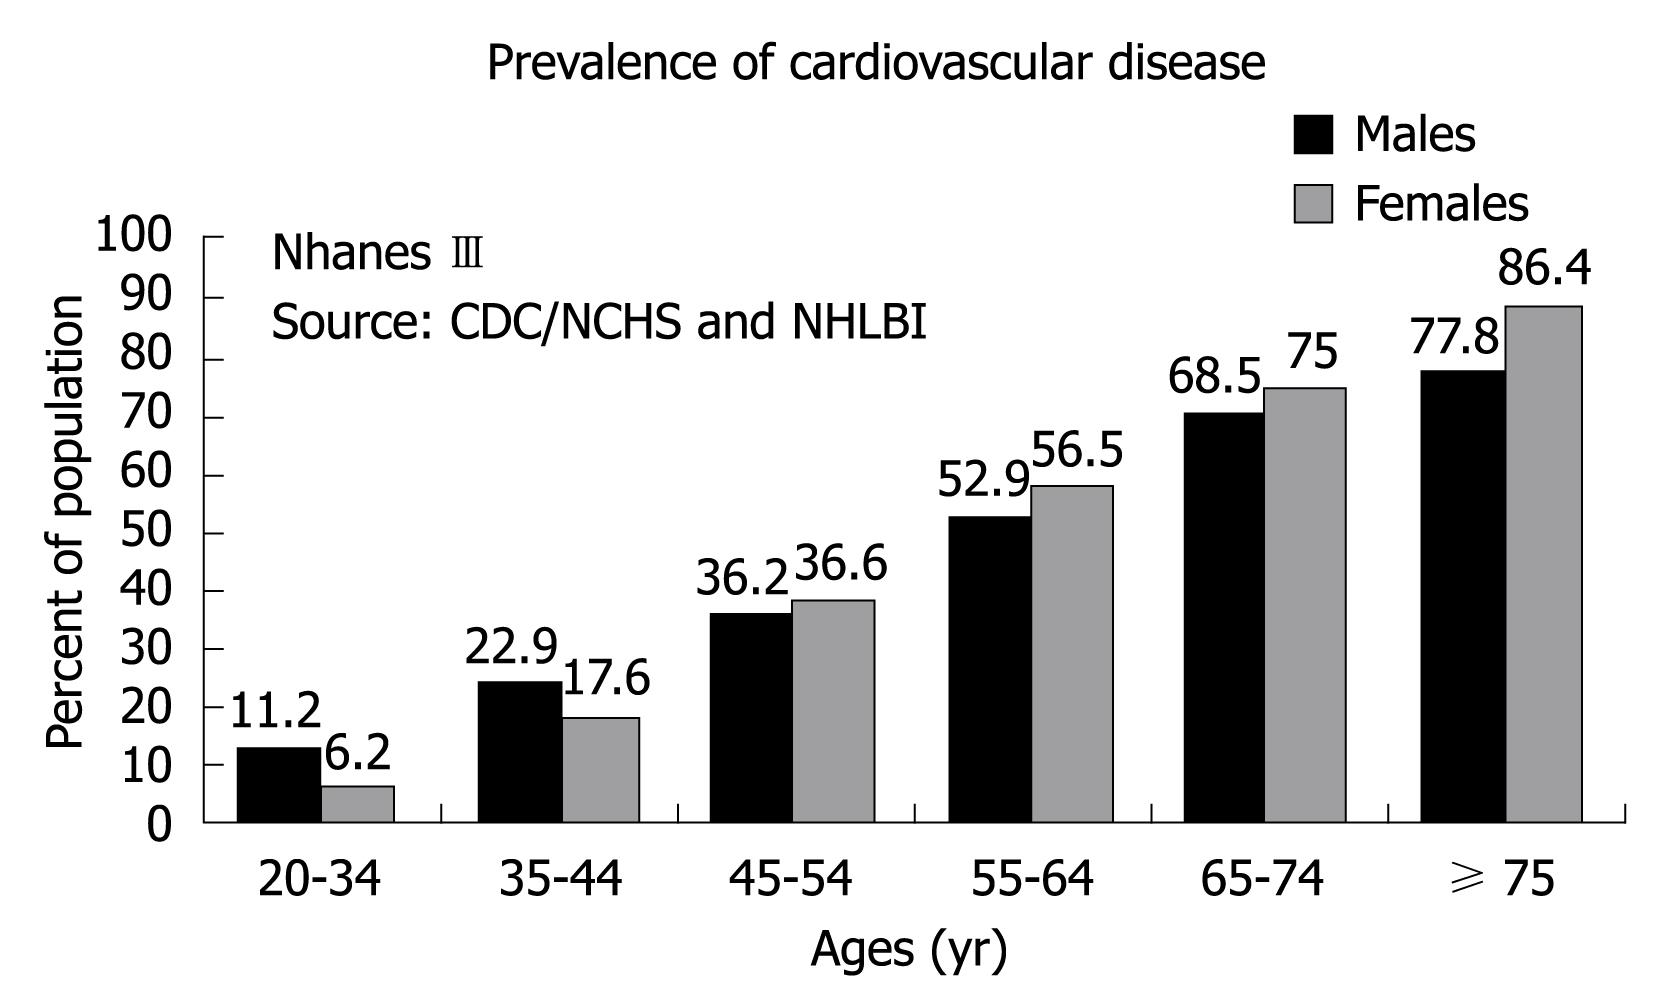 Prevalence Heart Disease Oxidative Status And Cardiovascular Risk In Women Keeping